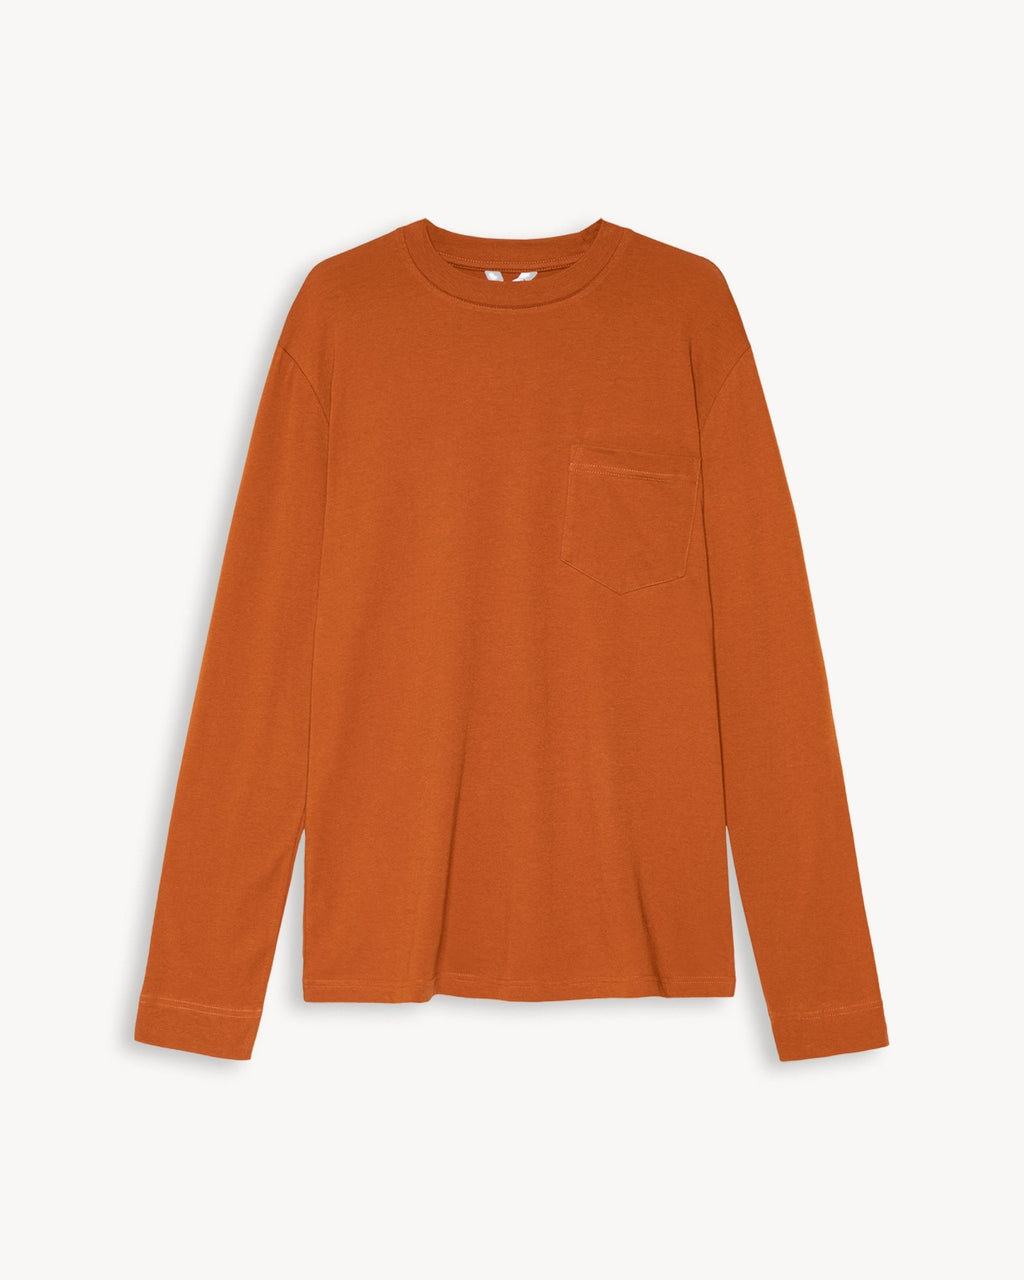 variant_2 | EN Longsleeve Men Orange Brown | DE Langarmshirt Herren Orange Braun